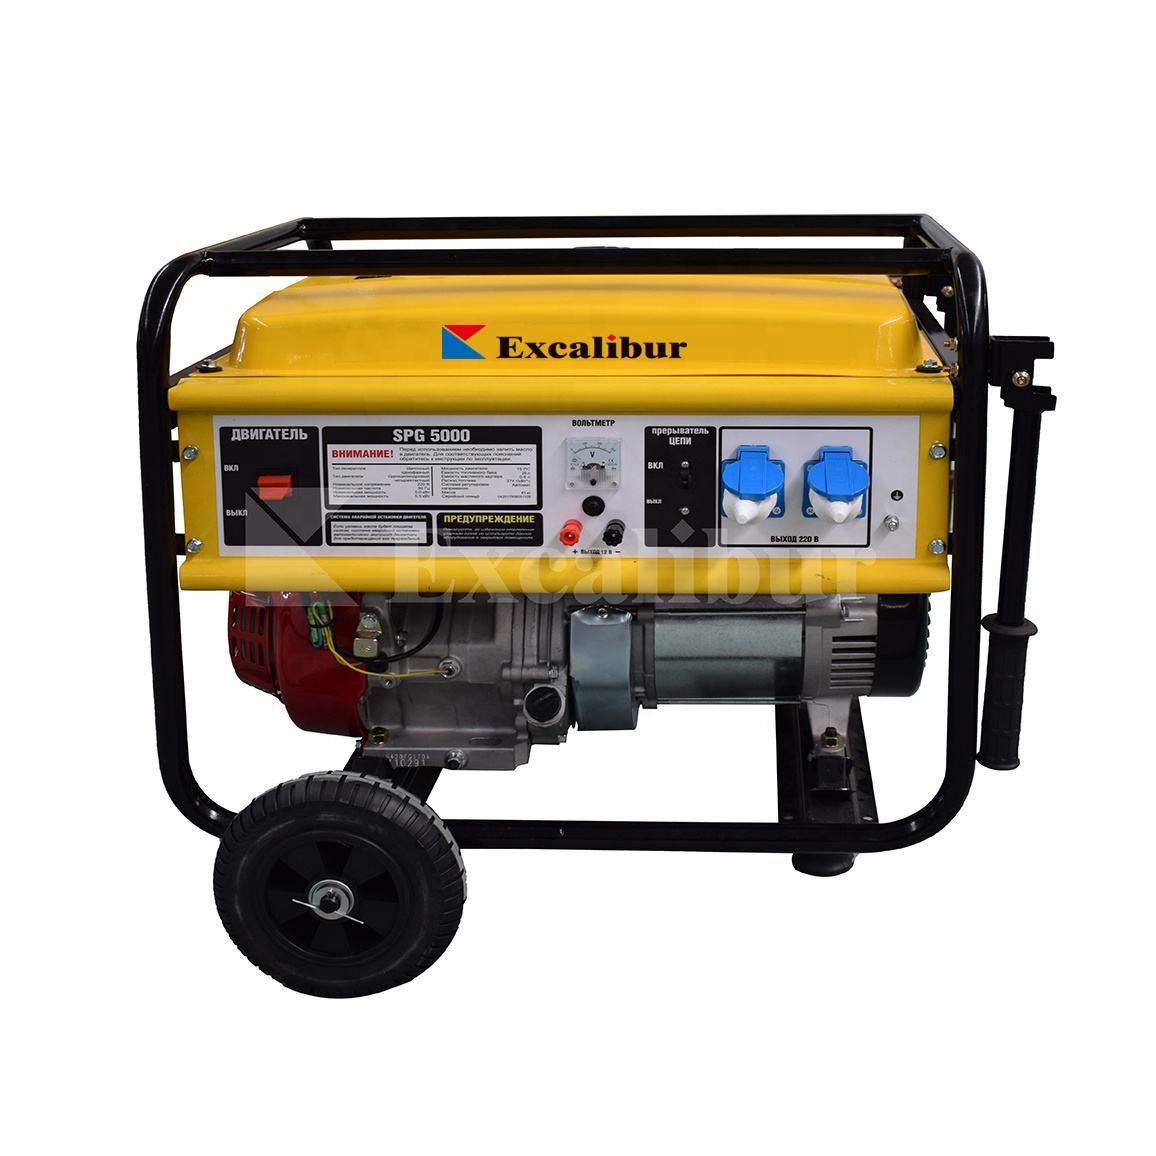 Open frame design air cooled gasoline portable generator with 15hp petrol engine and copper alternator